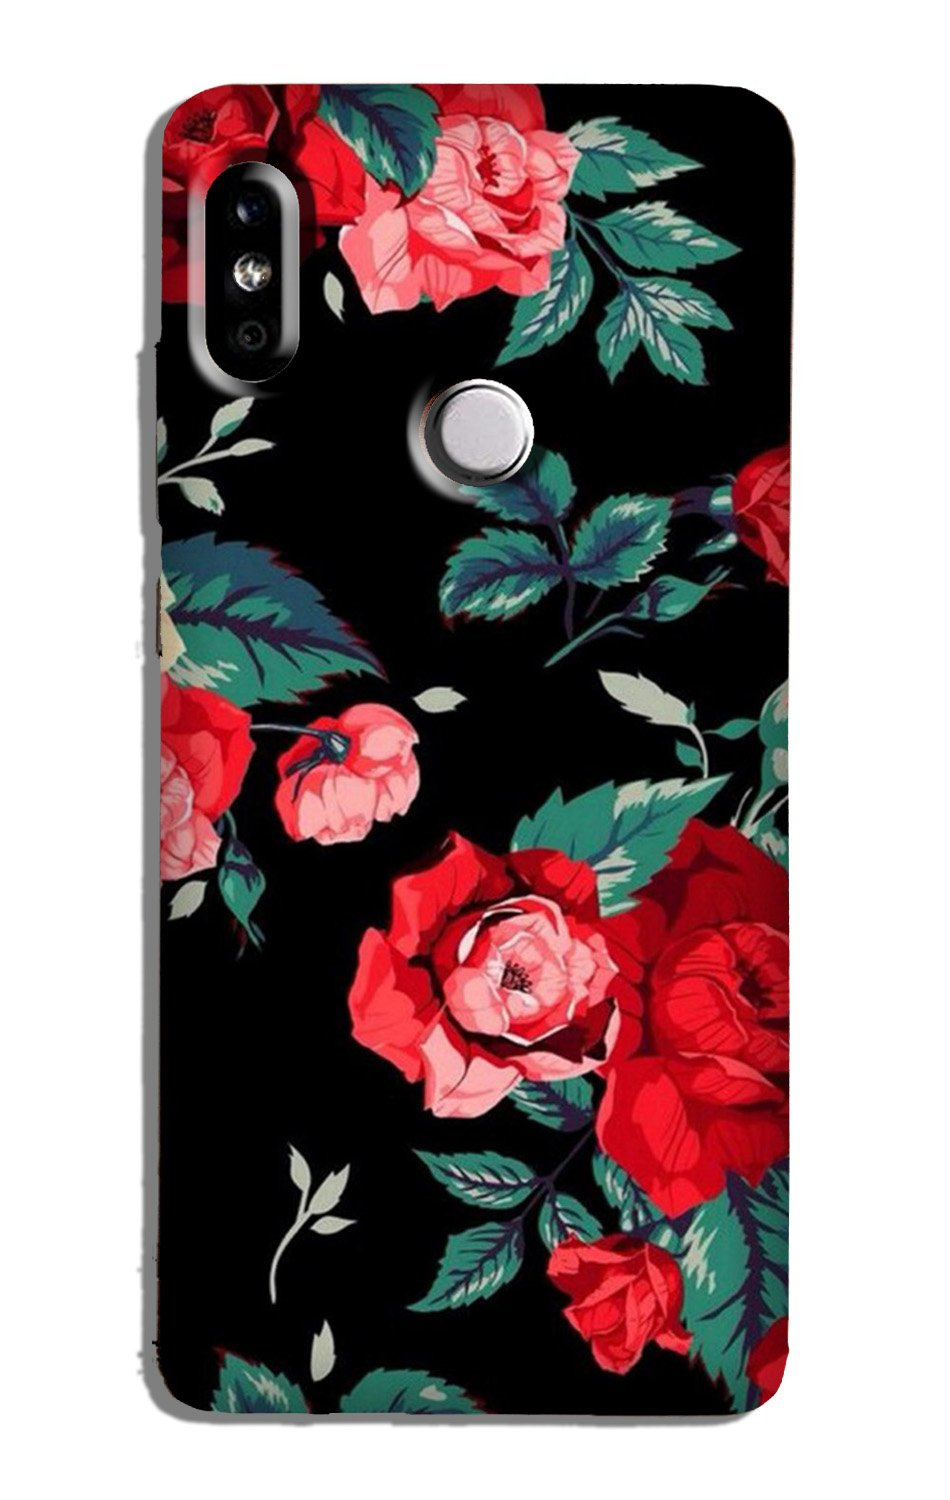 Red Rose2 Case for Xiaomi Redmi Y3